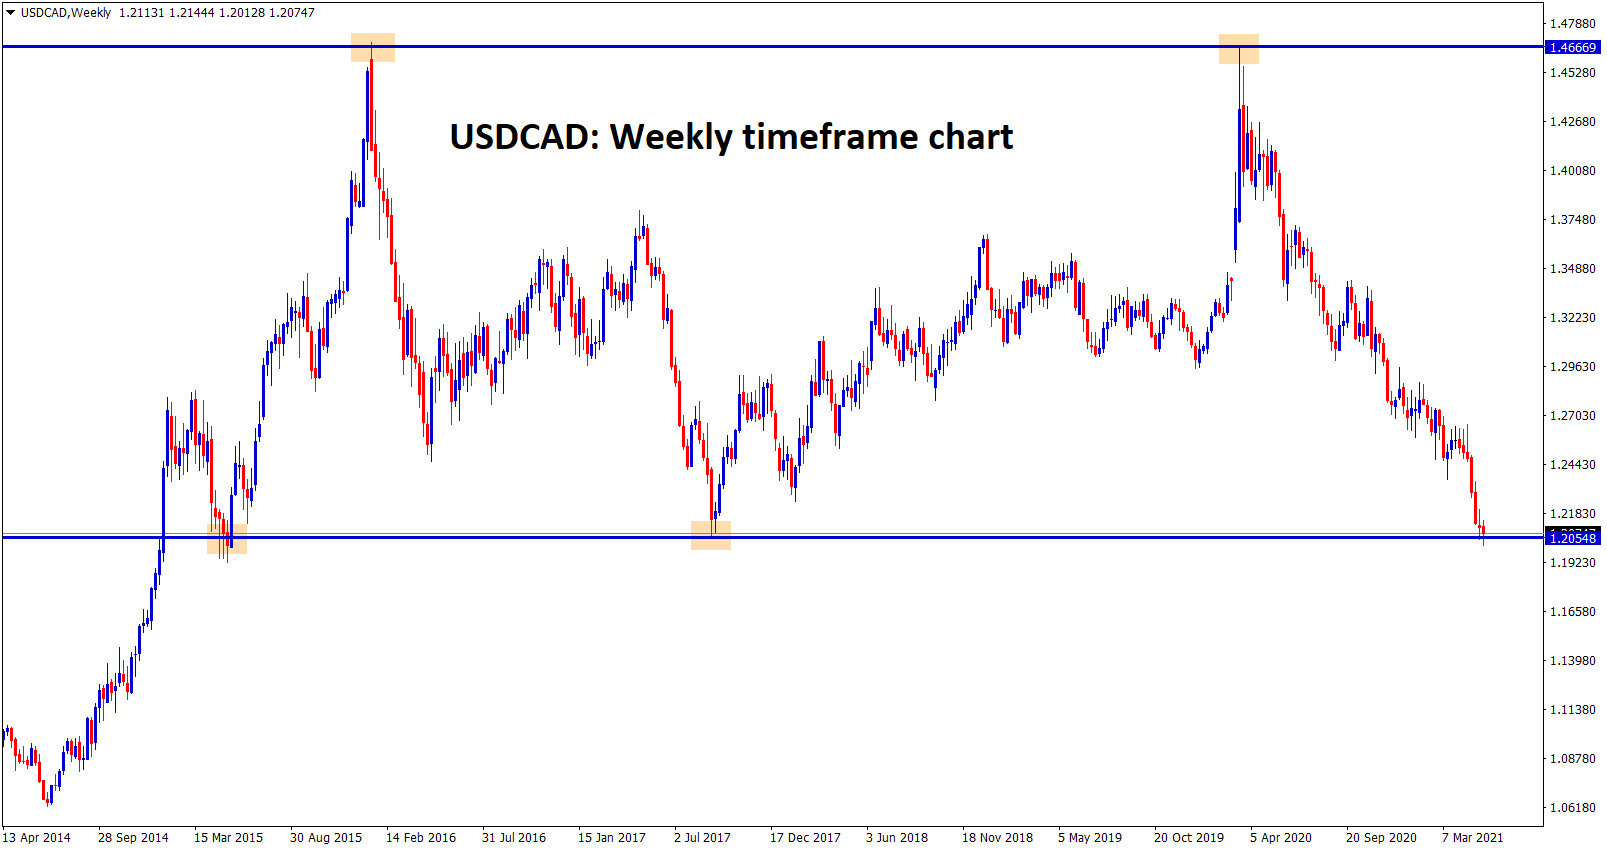 USDCAD at the important support zone now in weekly chart.